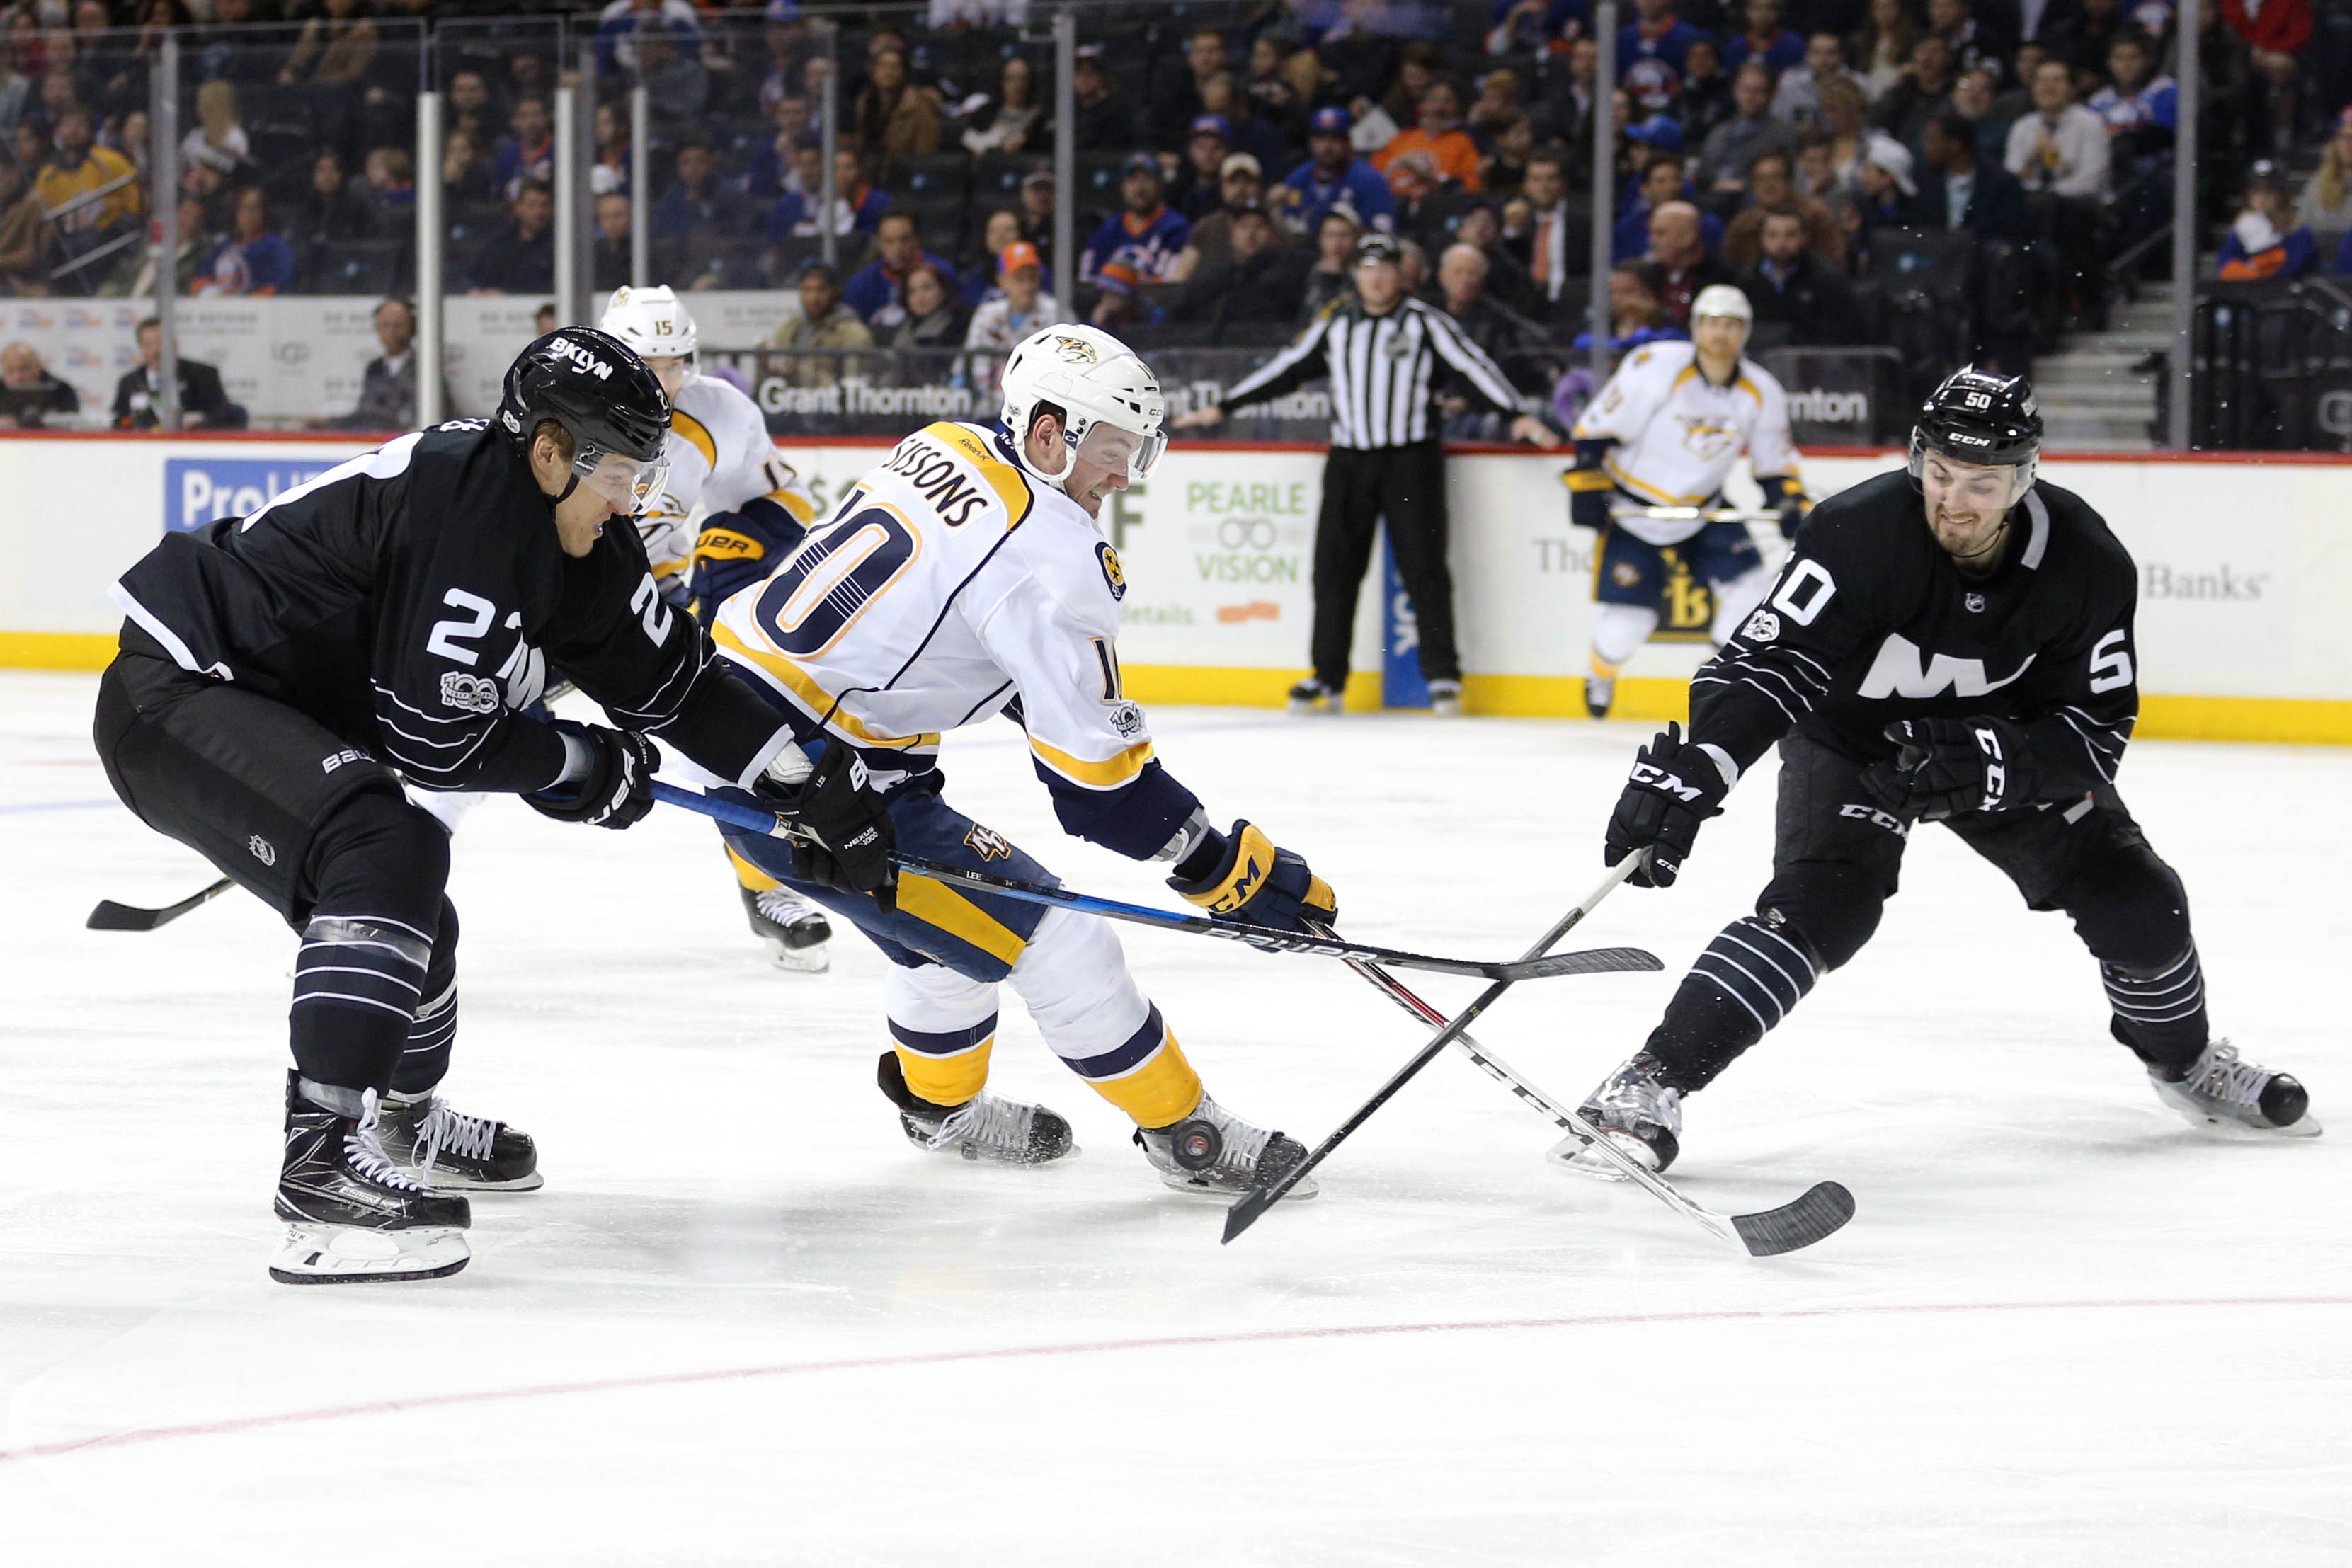 Mar 27, 2017; Brooklyn, NY, USA; Nashville Predators center Colton Sissons (10) plays the puck against New York Islanders center Anders Lee (27) and New York Islanders defenseman Adam Pelech (50) during the third period at Barclays Center. Mandatory Credit: Brad Penner-USA TODAY Sports